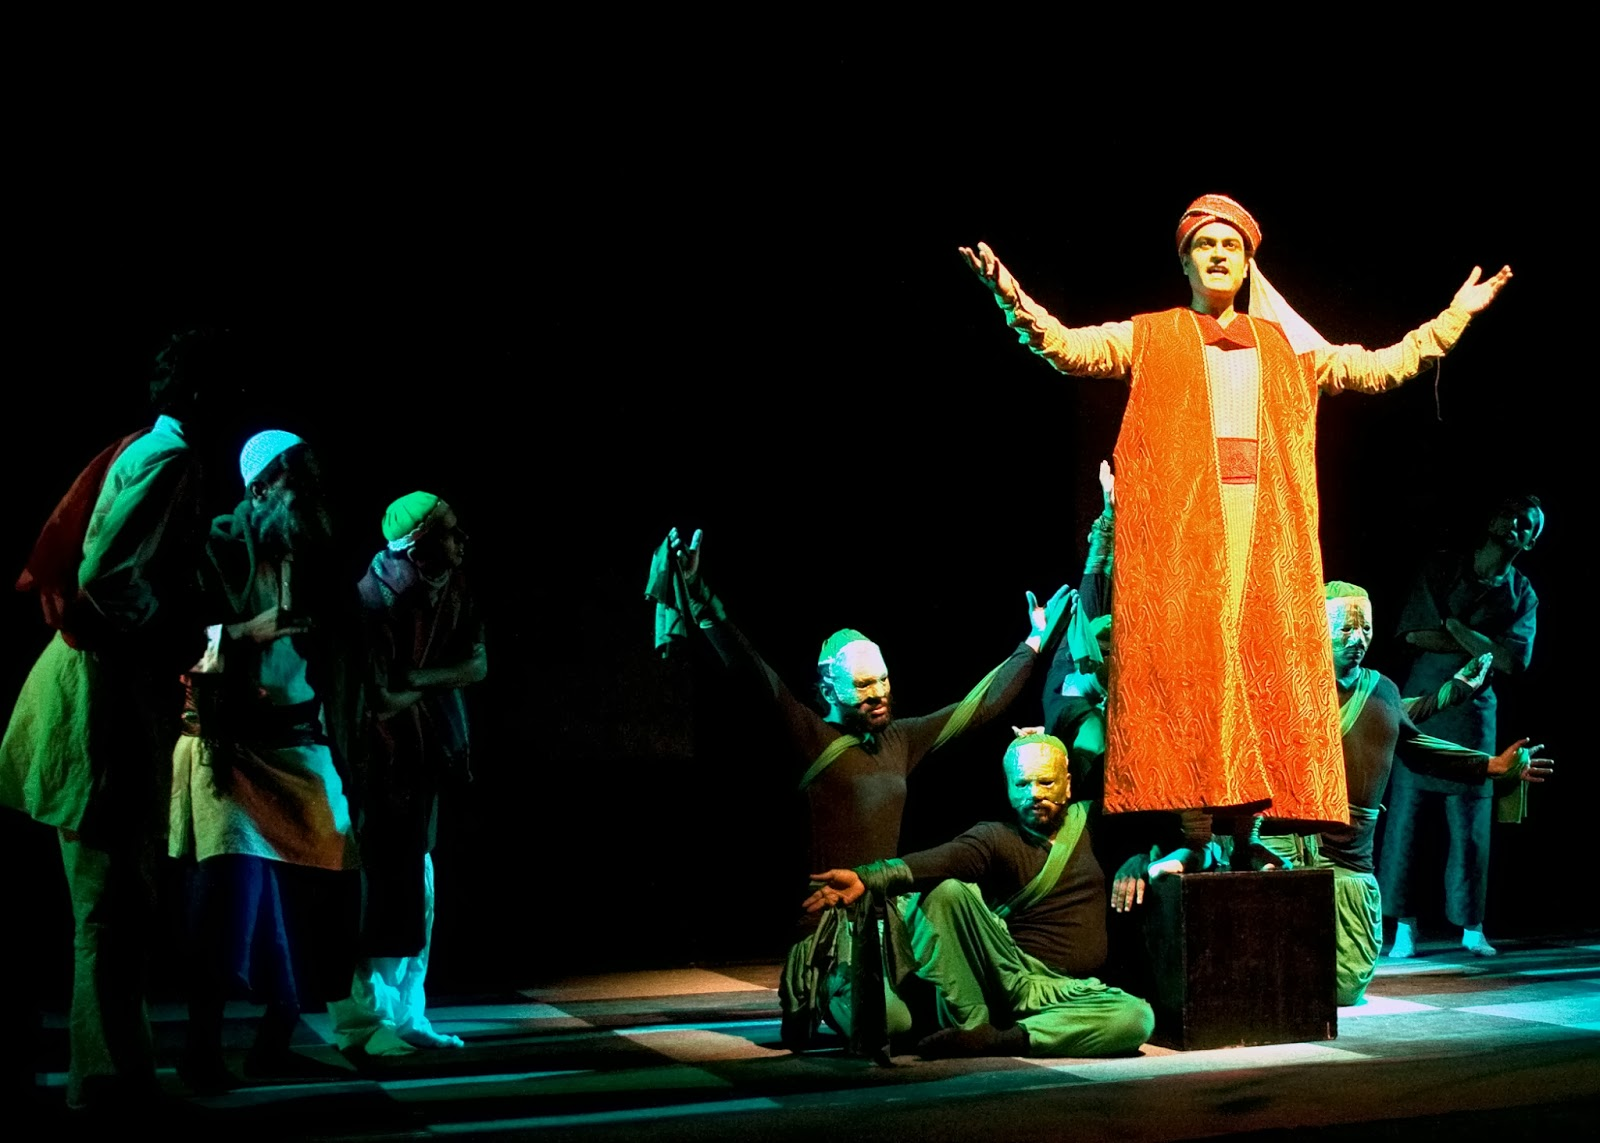 voice of imprisoned woman in girish karnad Karnad in his play naga-mandala exposes the male discrimination, women oppression, the injustice done to women in the patriarchal system and also mythical and historical practices in the male domination world.